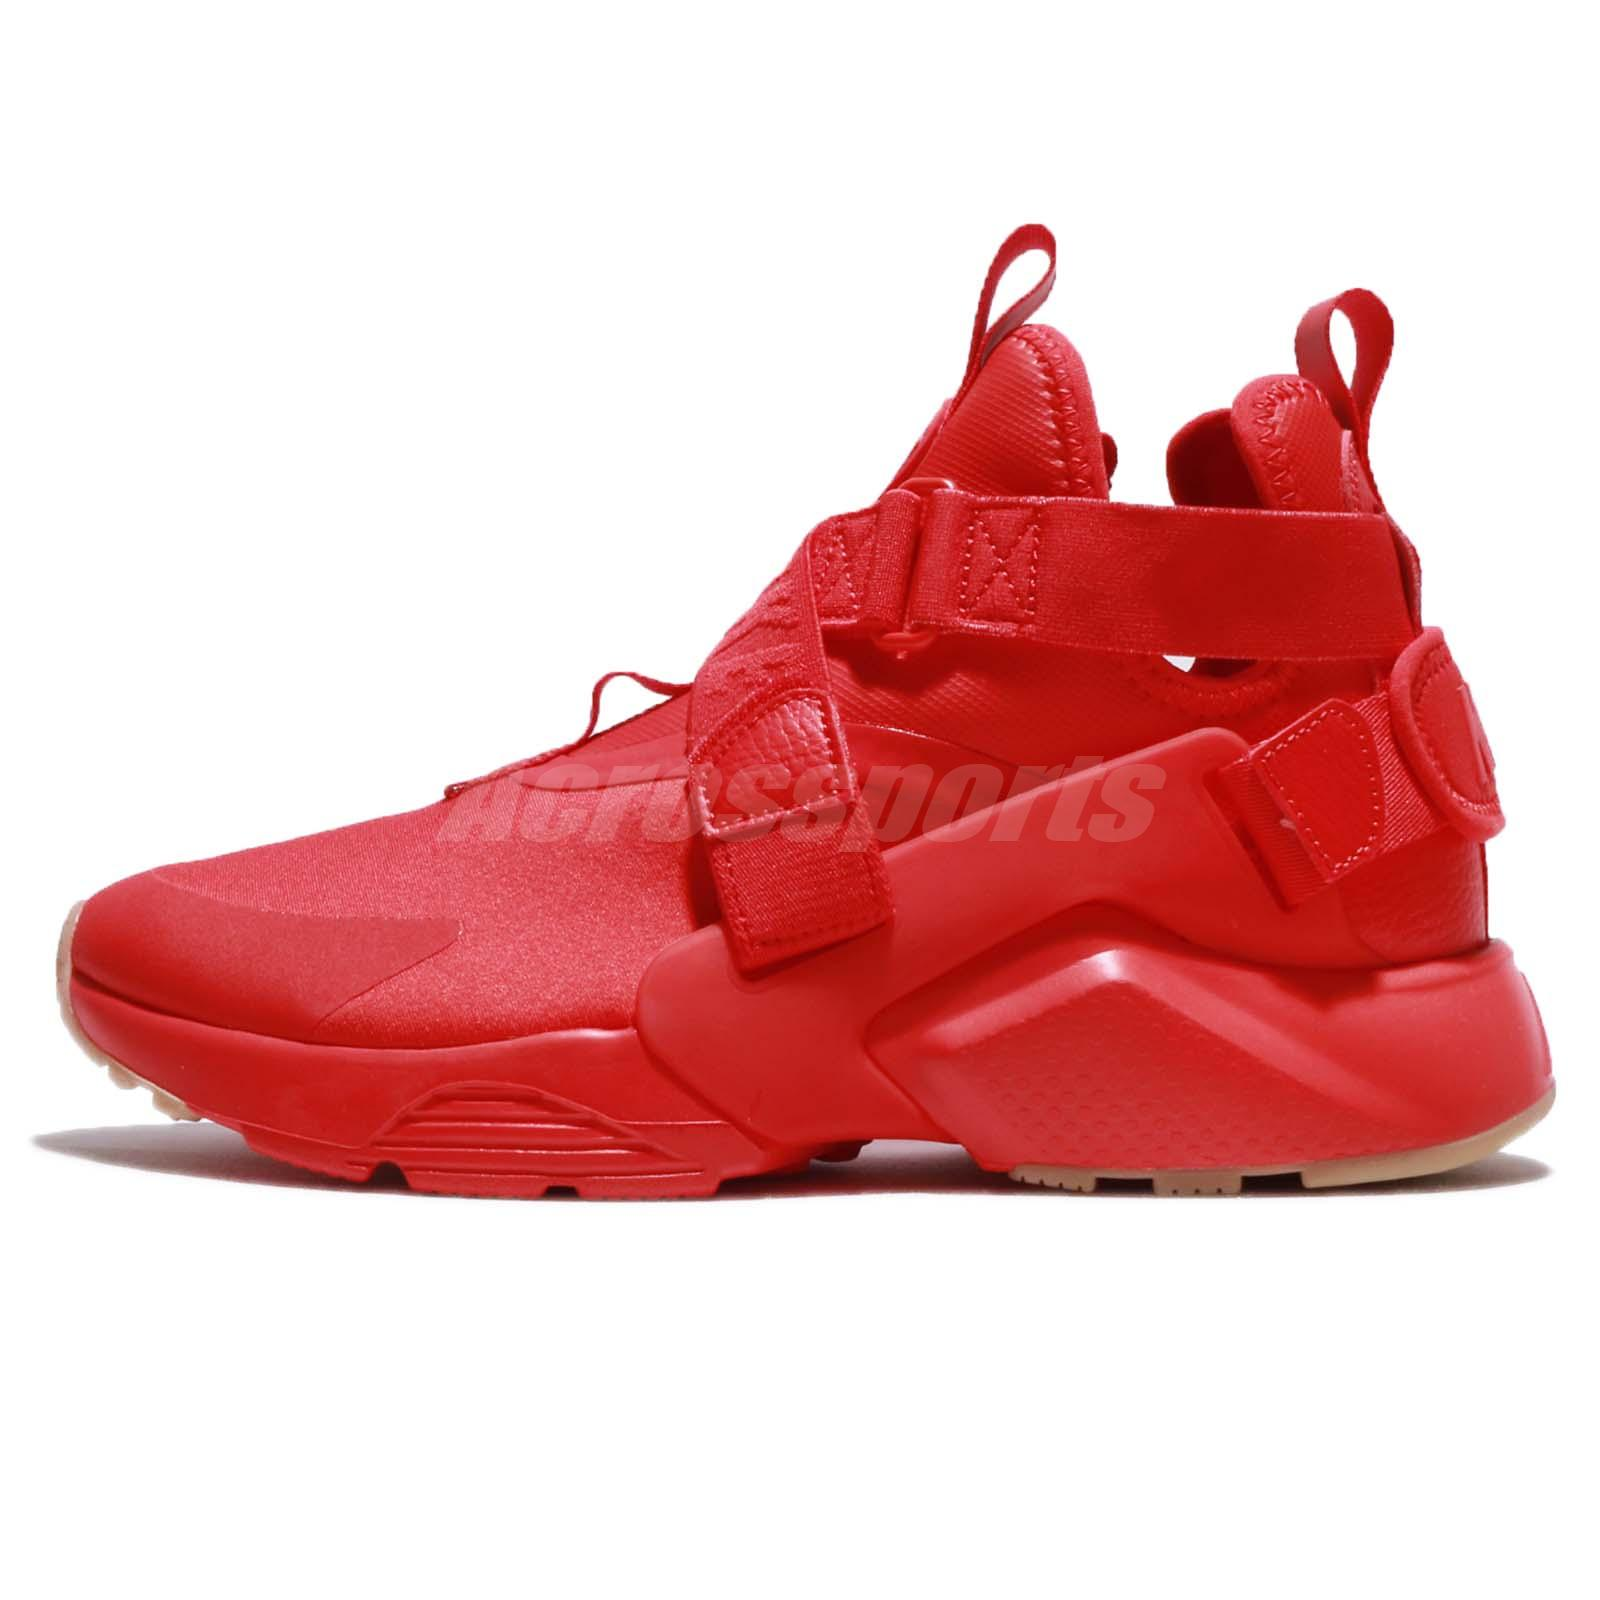 9d8eda1b7b Wmns Nike Air Huarache City Speed Red Black Women Running Shoes AH6787-600